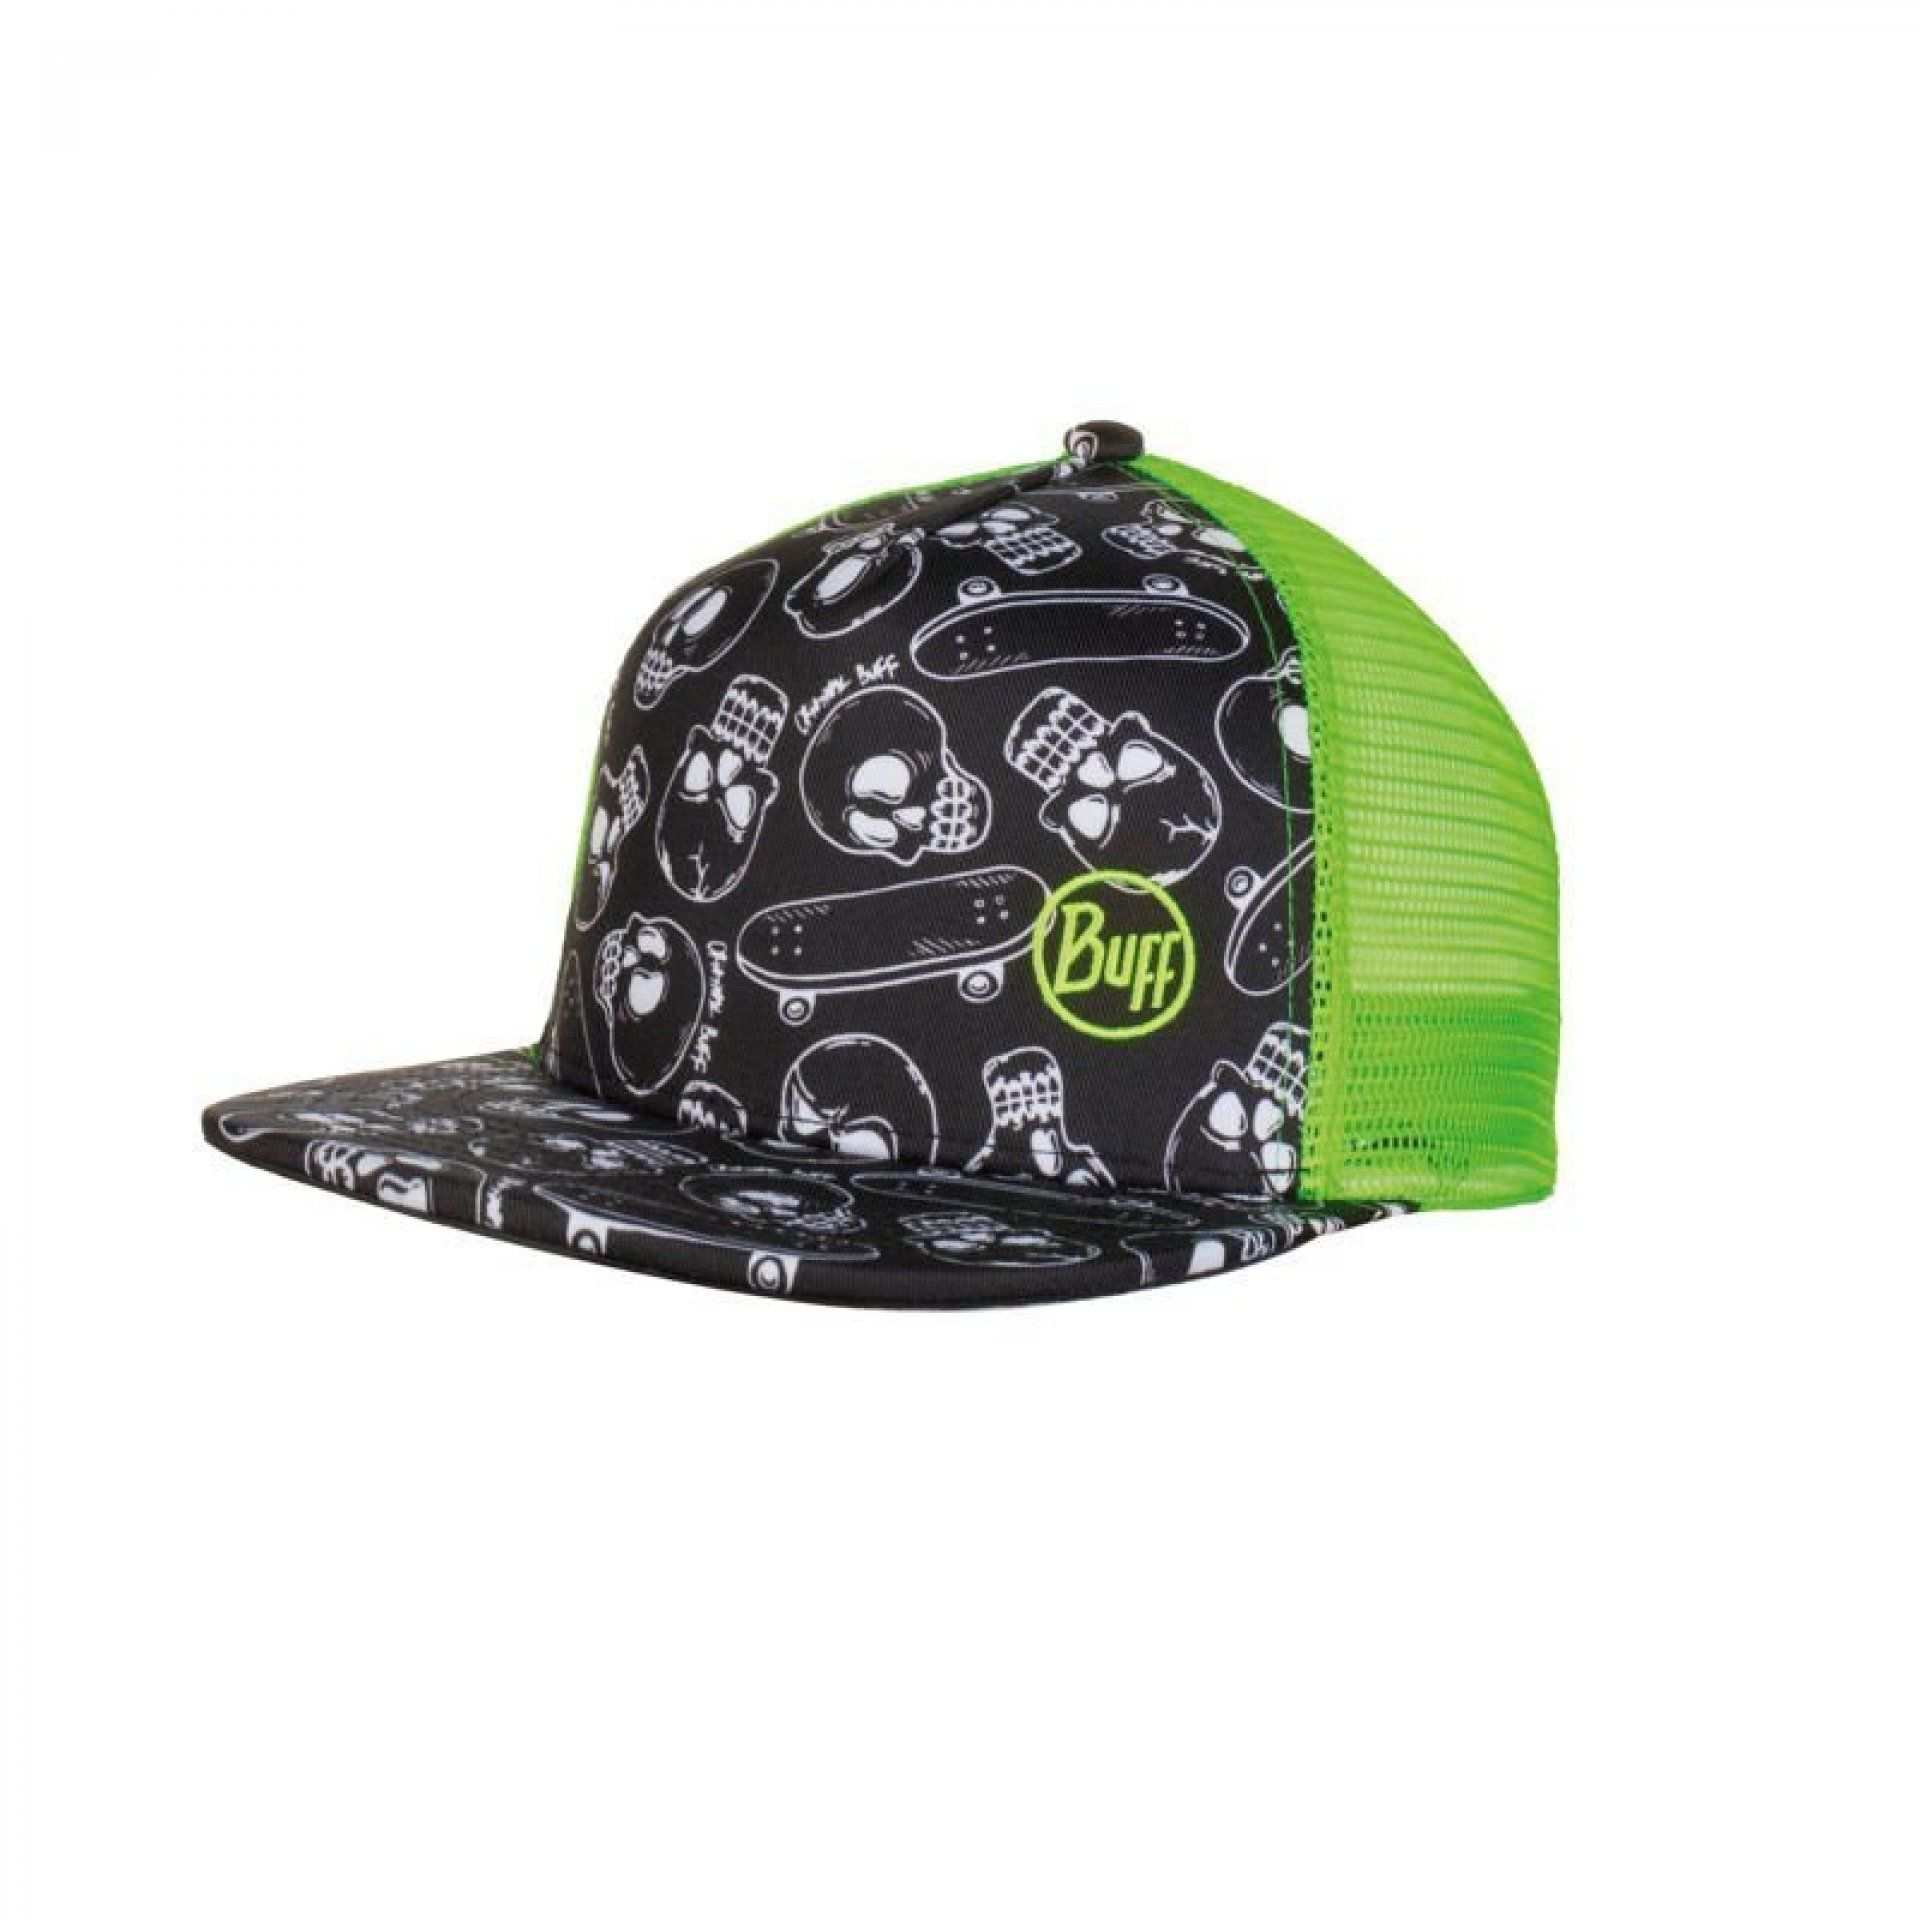 CZAPKA Z DASZKIEM BUFF TRUCKER CAP KIDS BONE MULTI